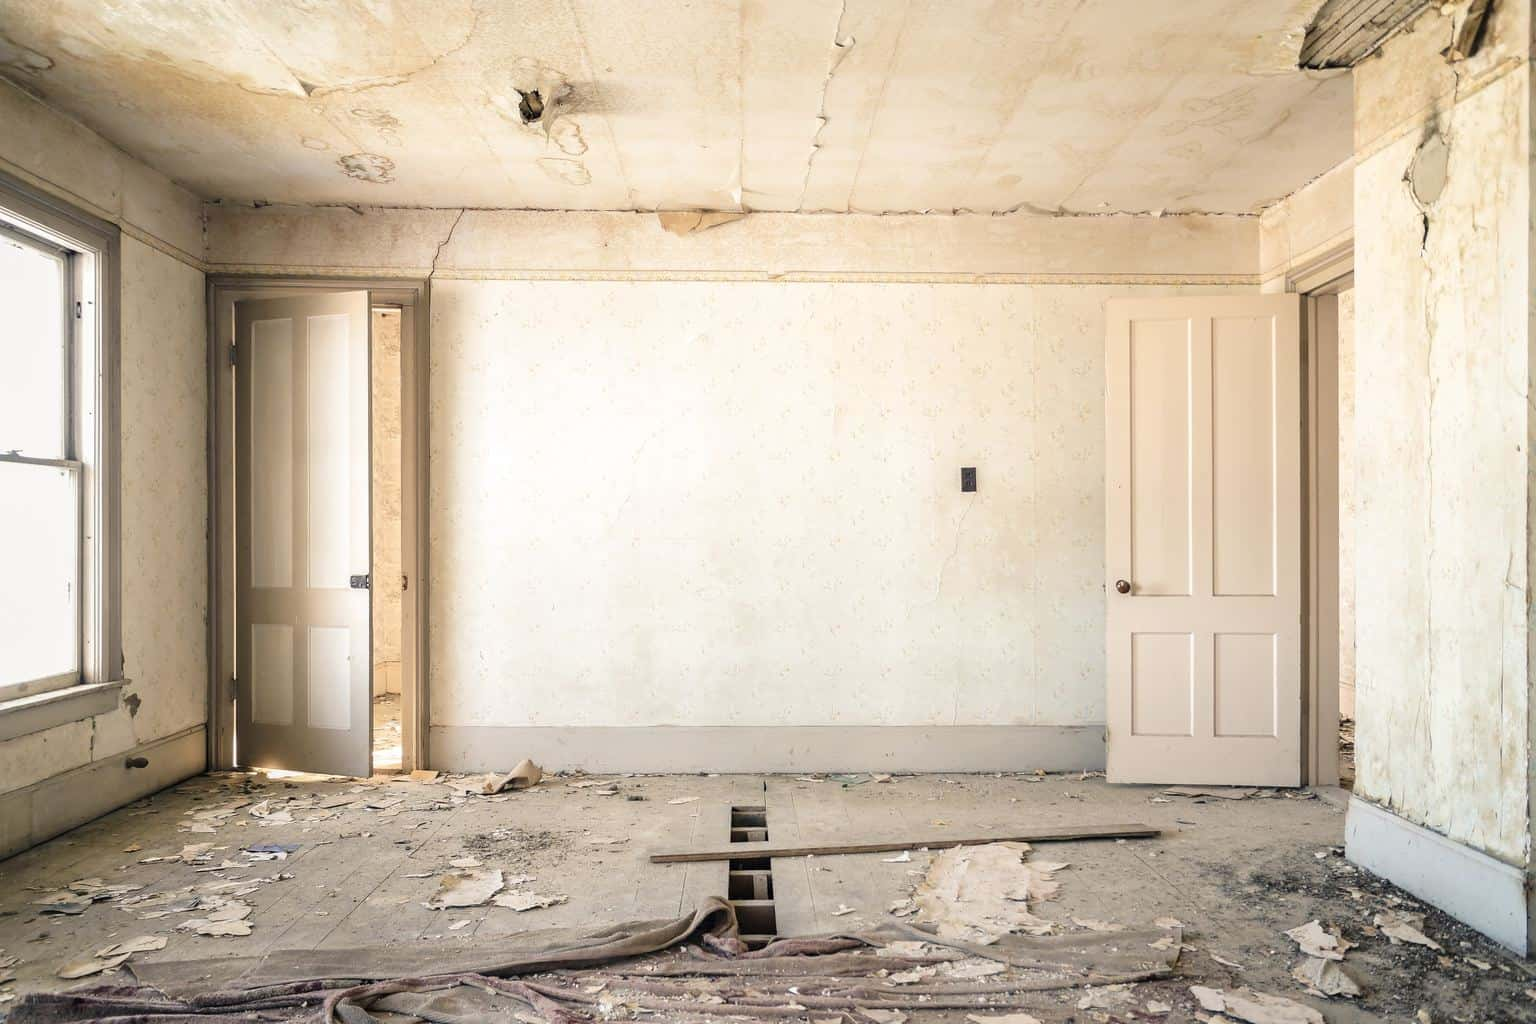 Answering the most asked FAQ's About Flipping Houses and the process we use for finding, renovating and selling flip houses.